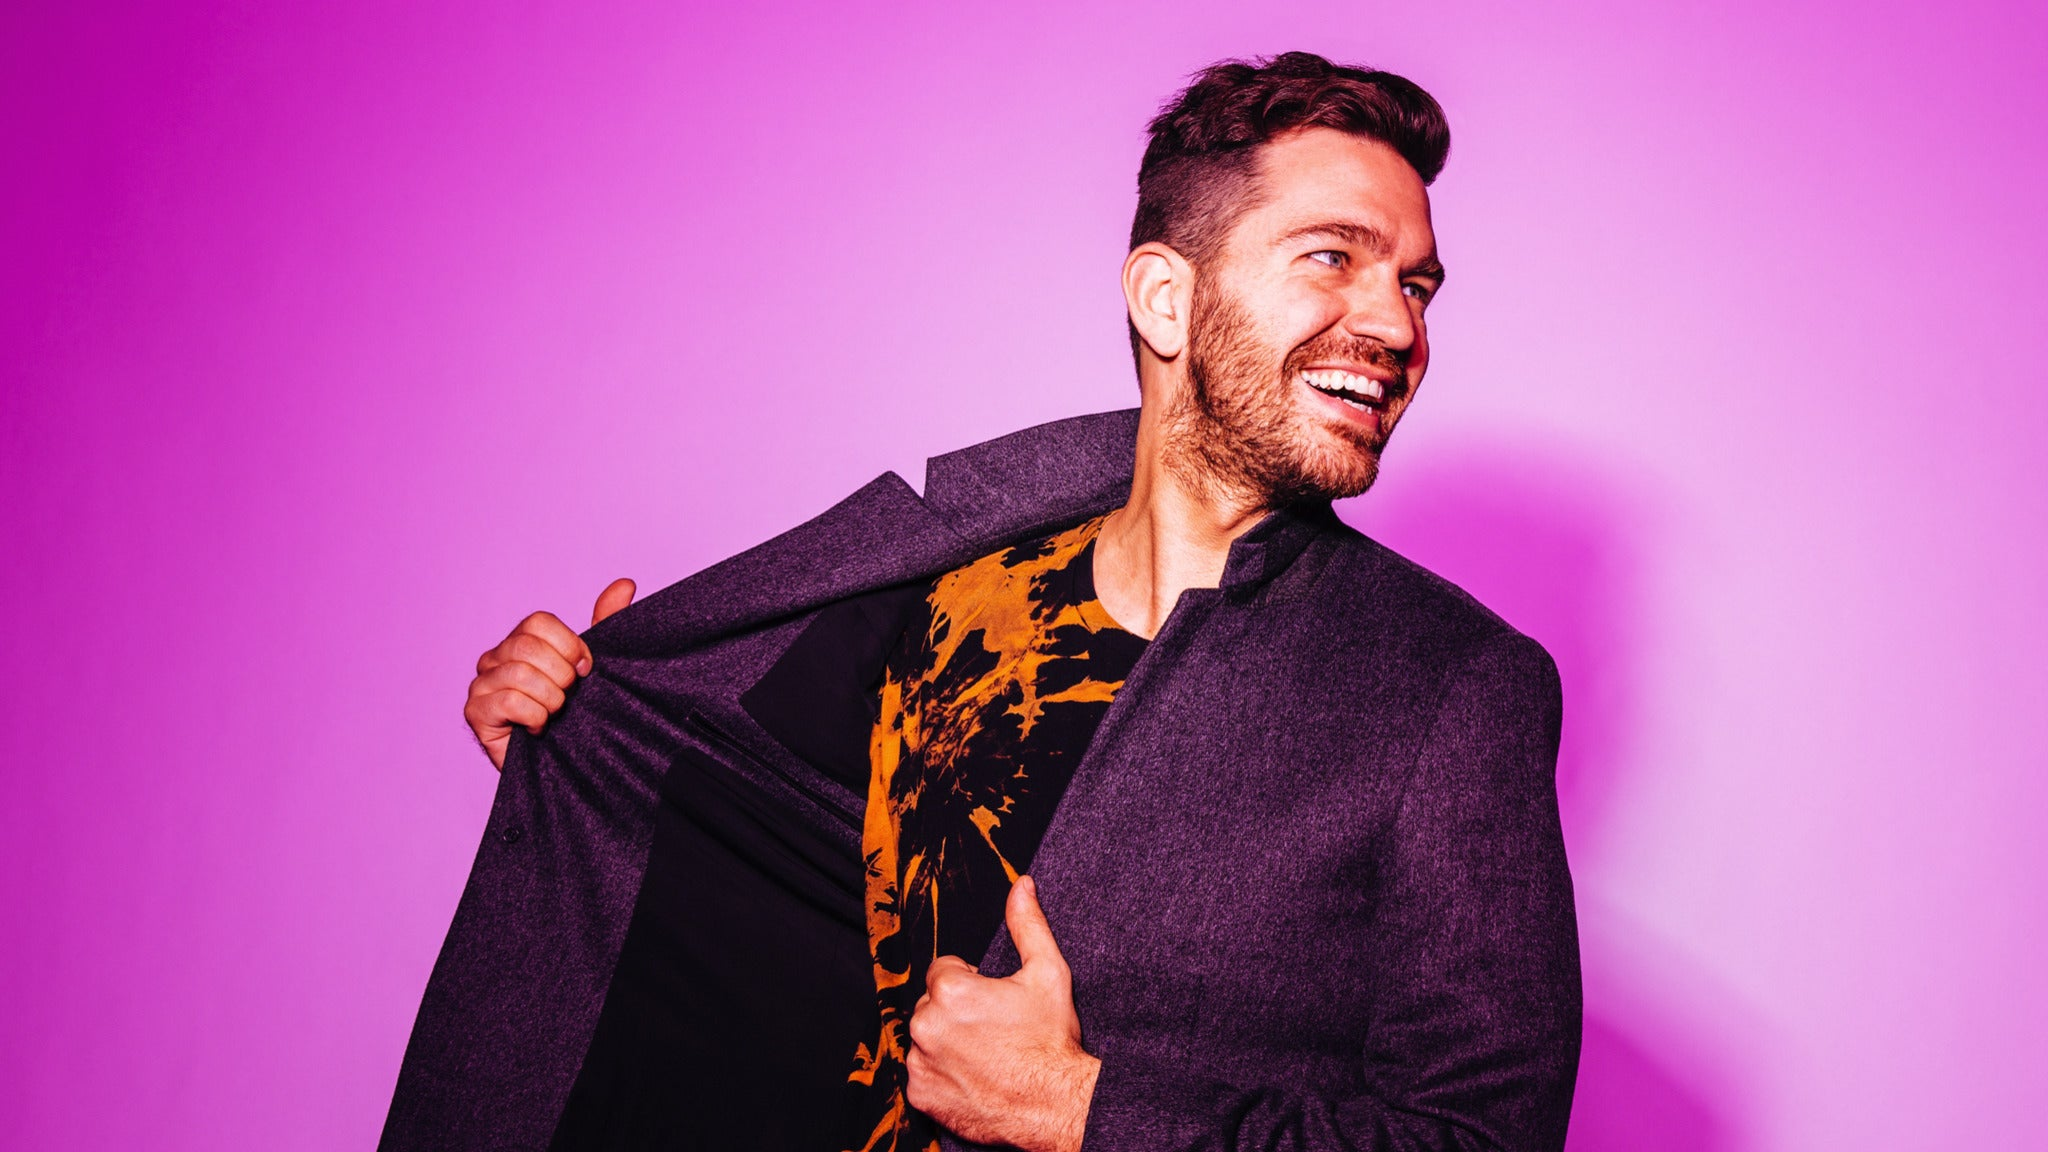 Andy Grammer at Ridgefield Playhouse